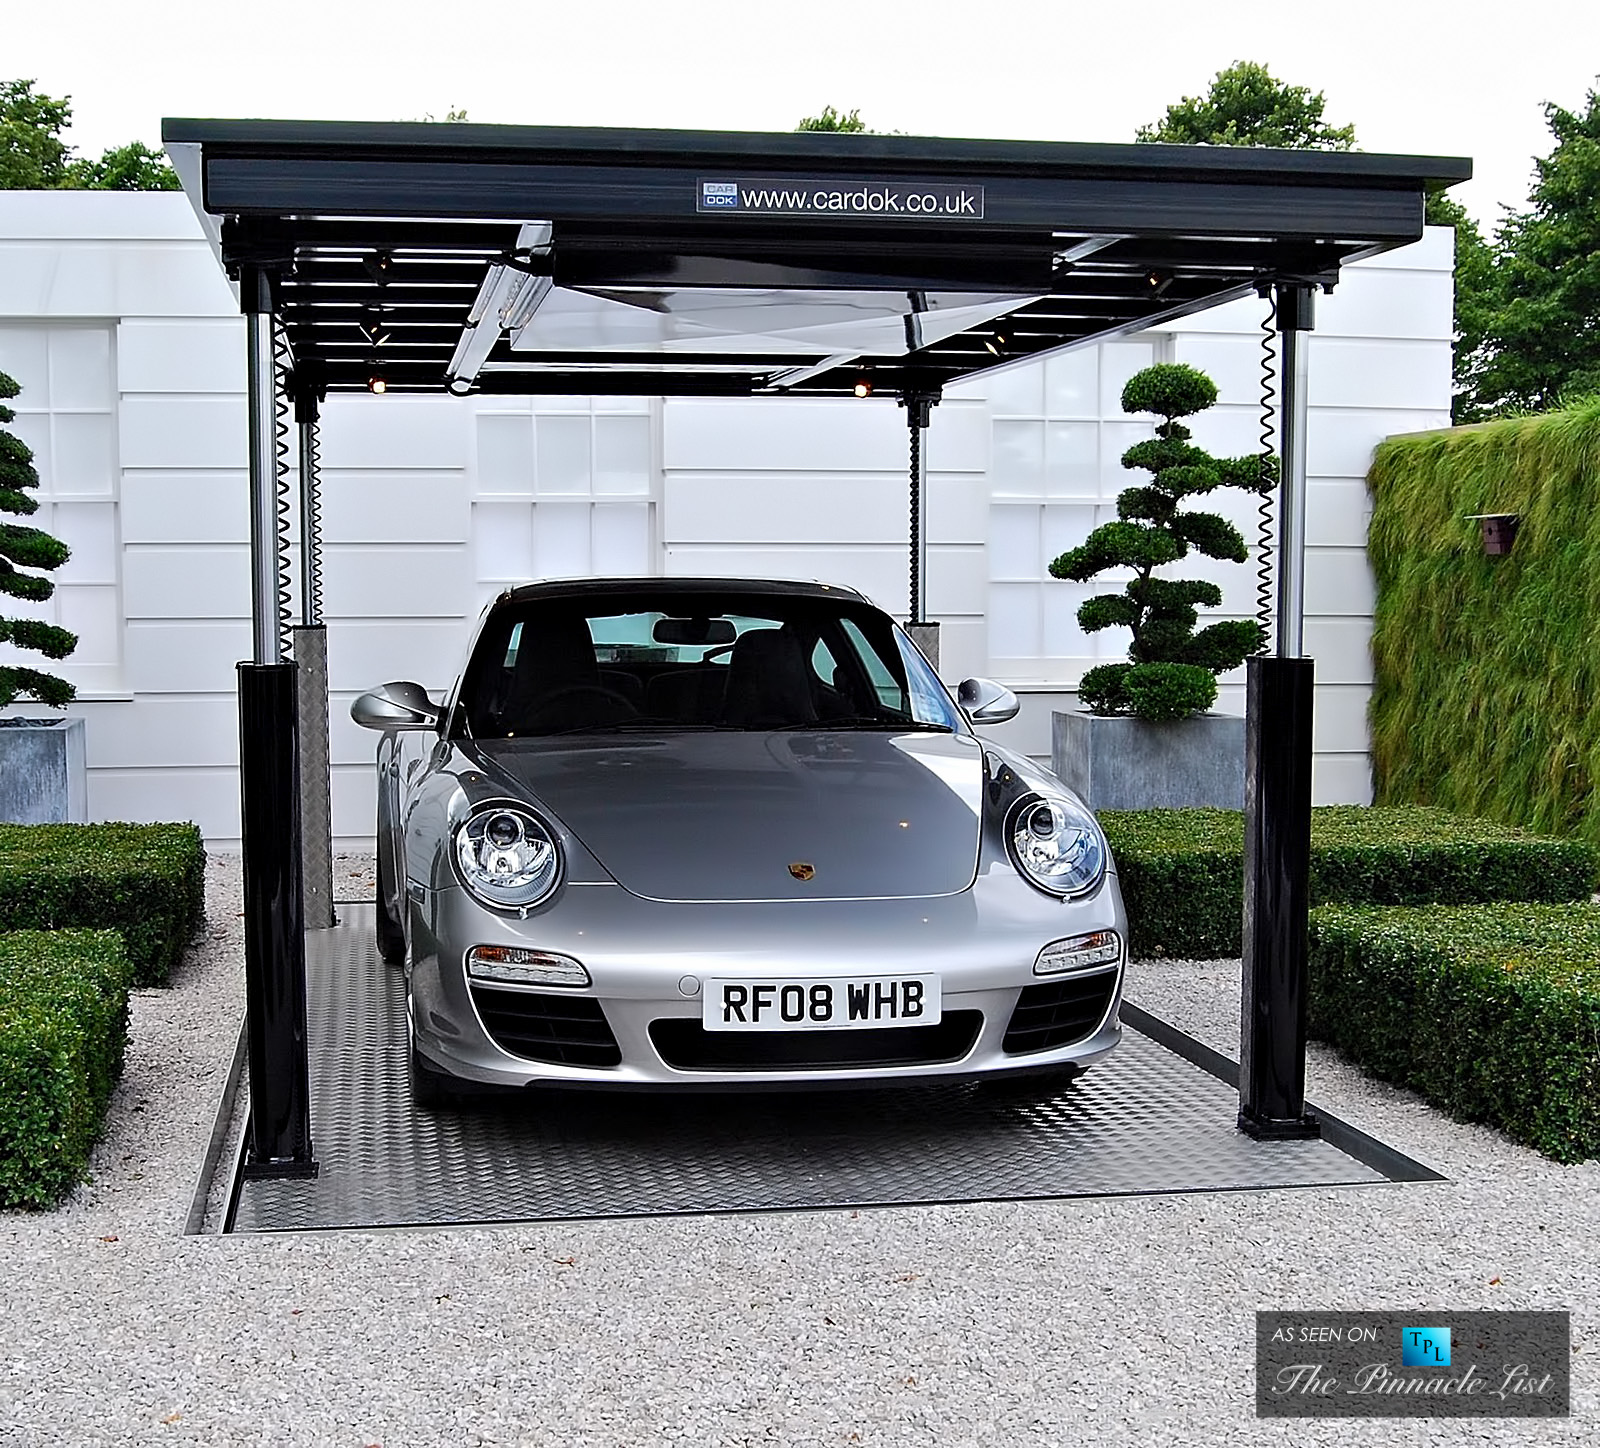 Cardok Underground Garage – The Ultimate Urban Solution for Secure Luxury Car Parking and Storage